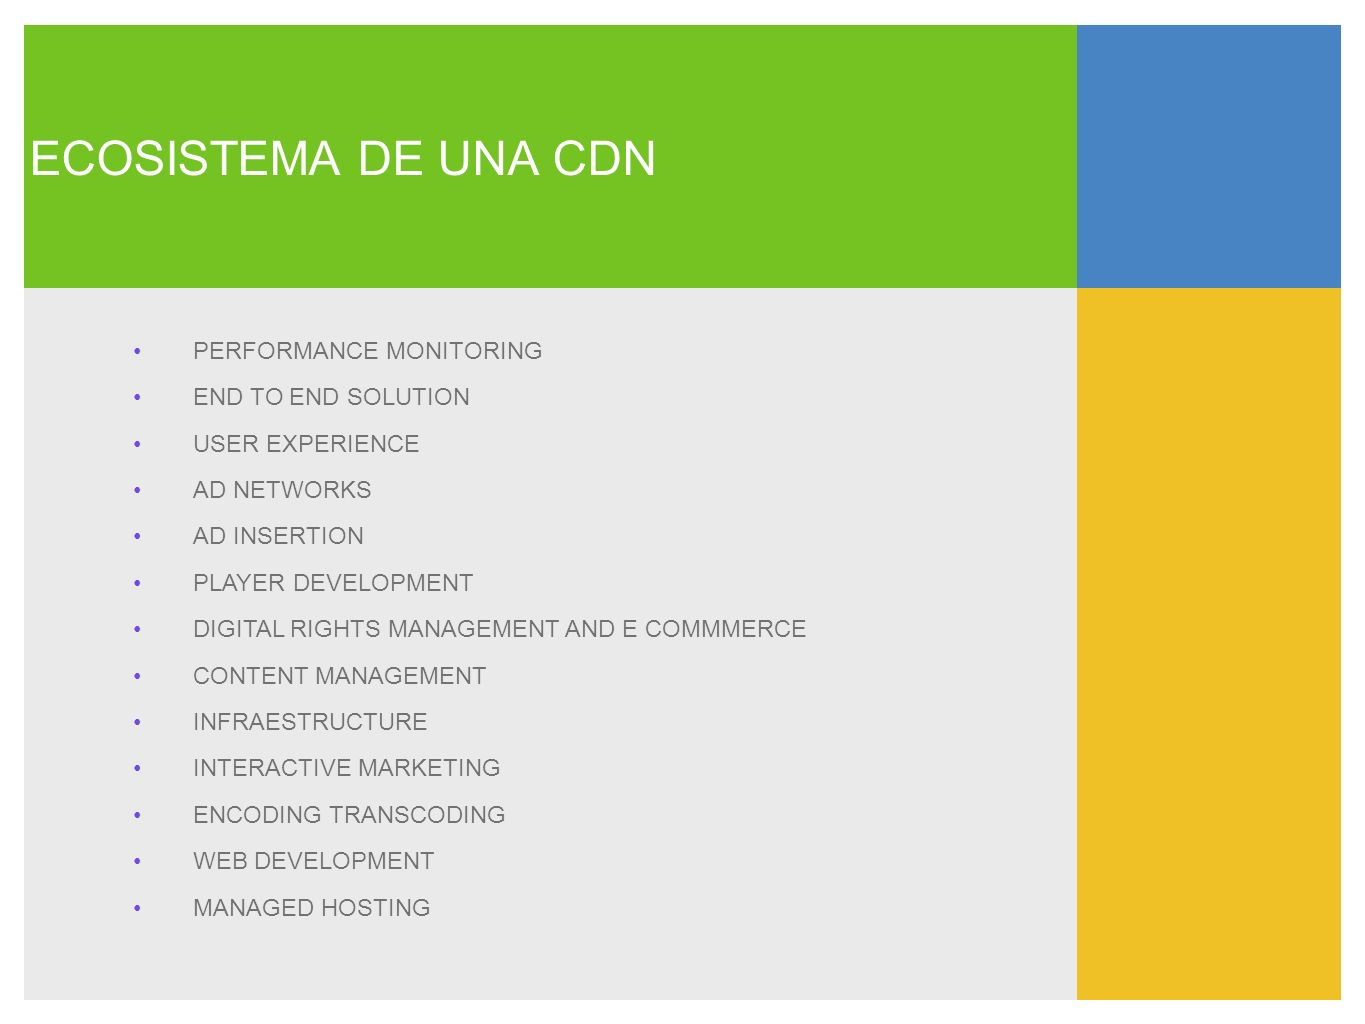 ECOSISTEMA DE UNA CDN PERFORMANCE MONITORING END TO END SOLUTION